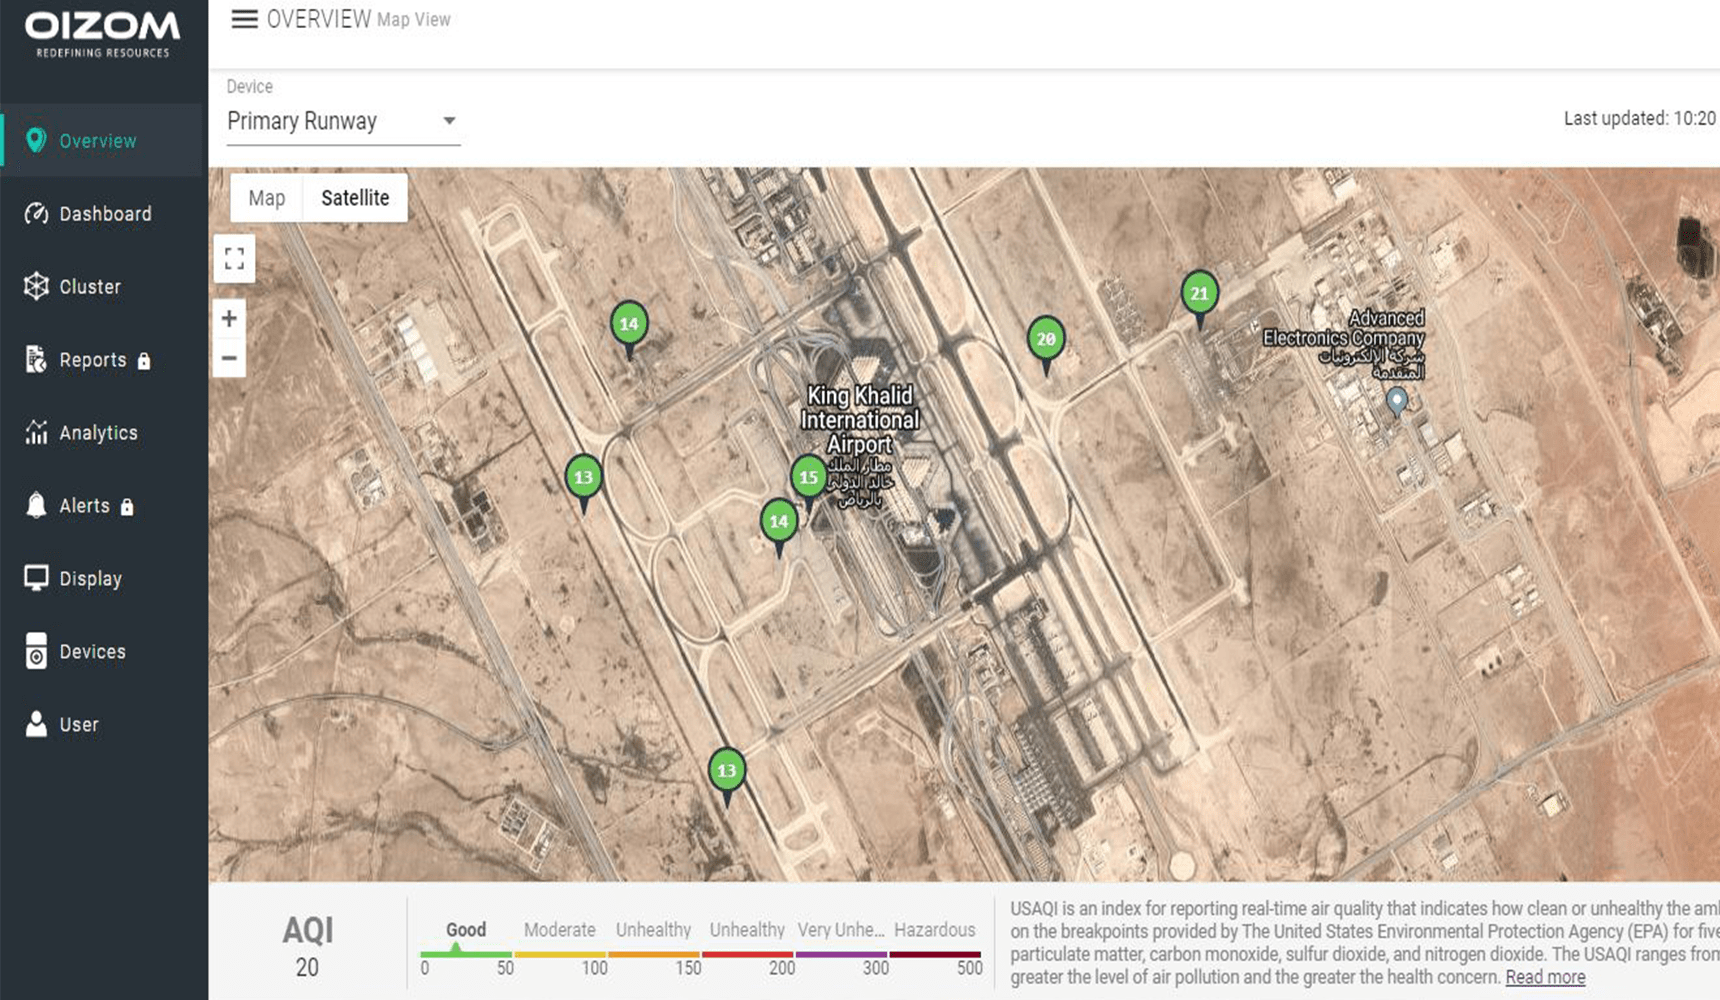 Oizom Outdoor Air Pollution Sensor generates AQI of the locations in and around the airport to provide environmental health.